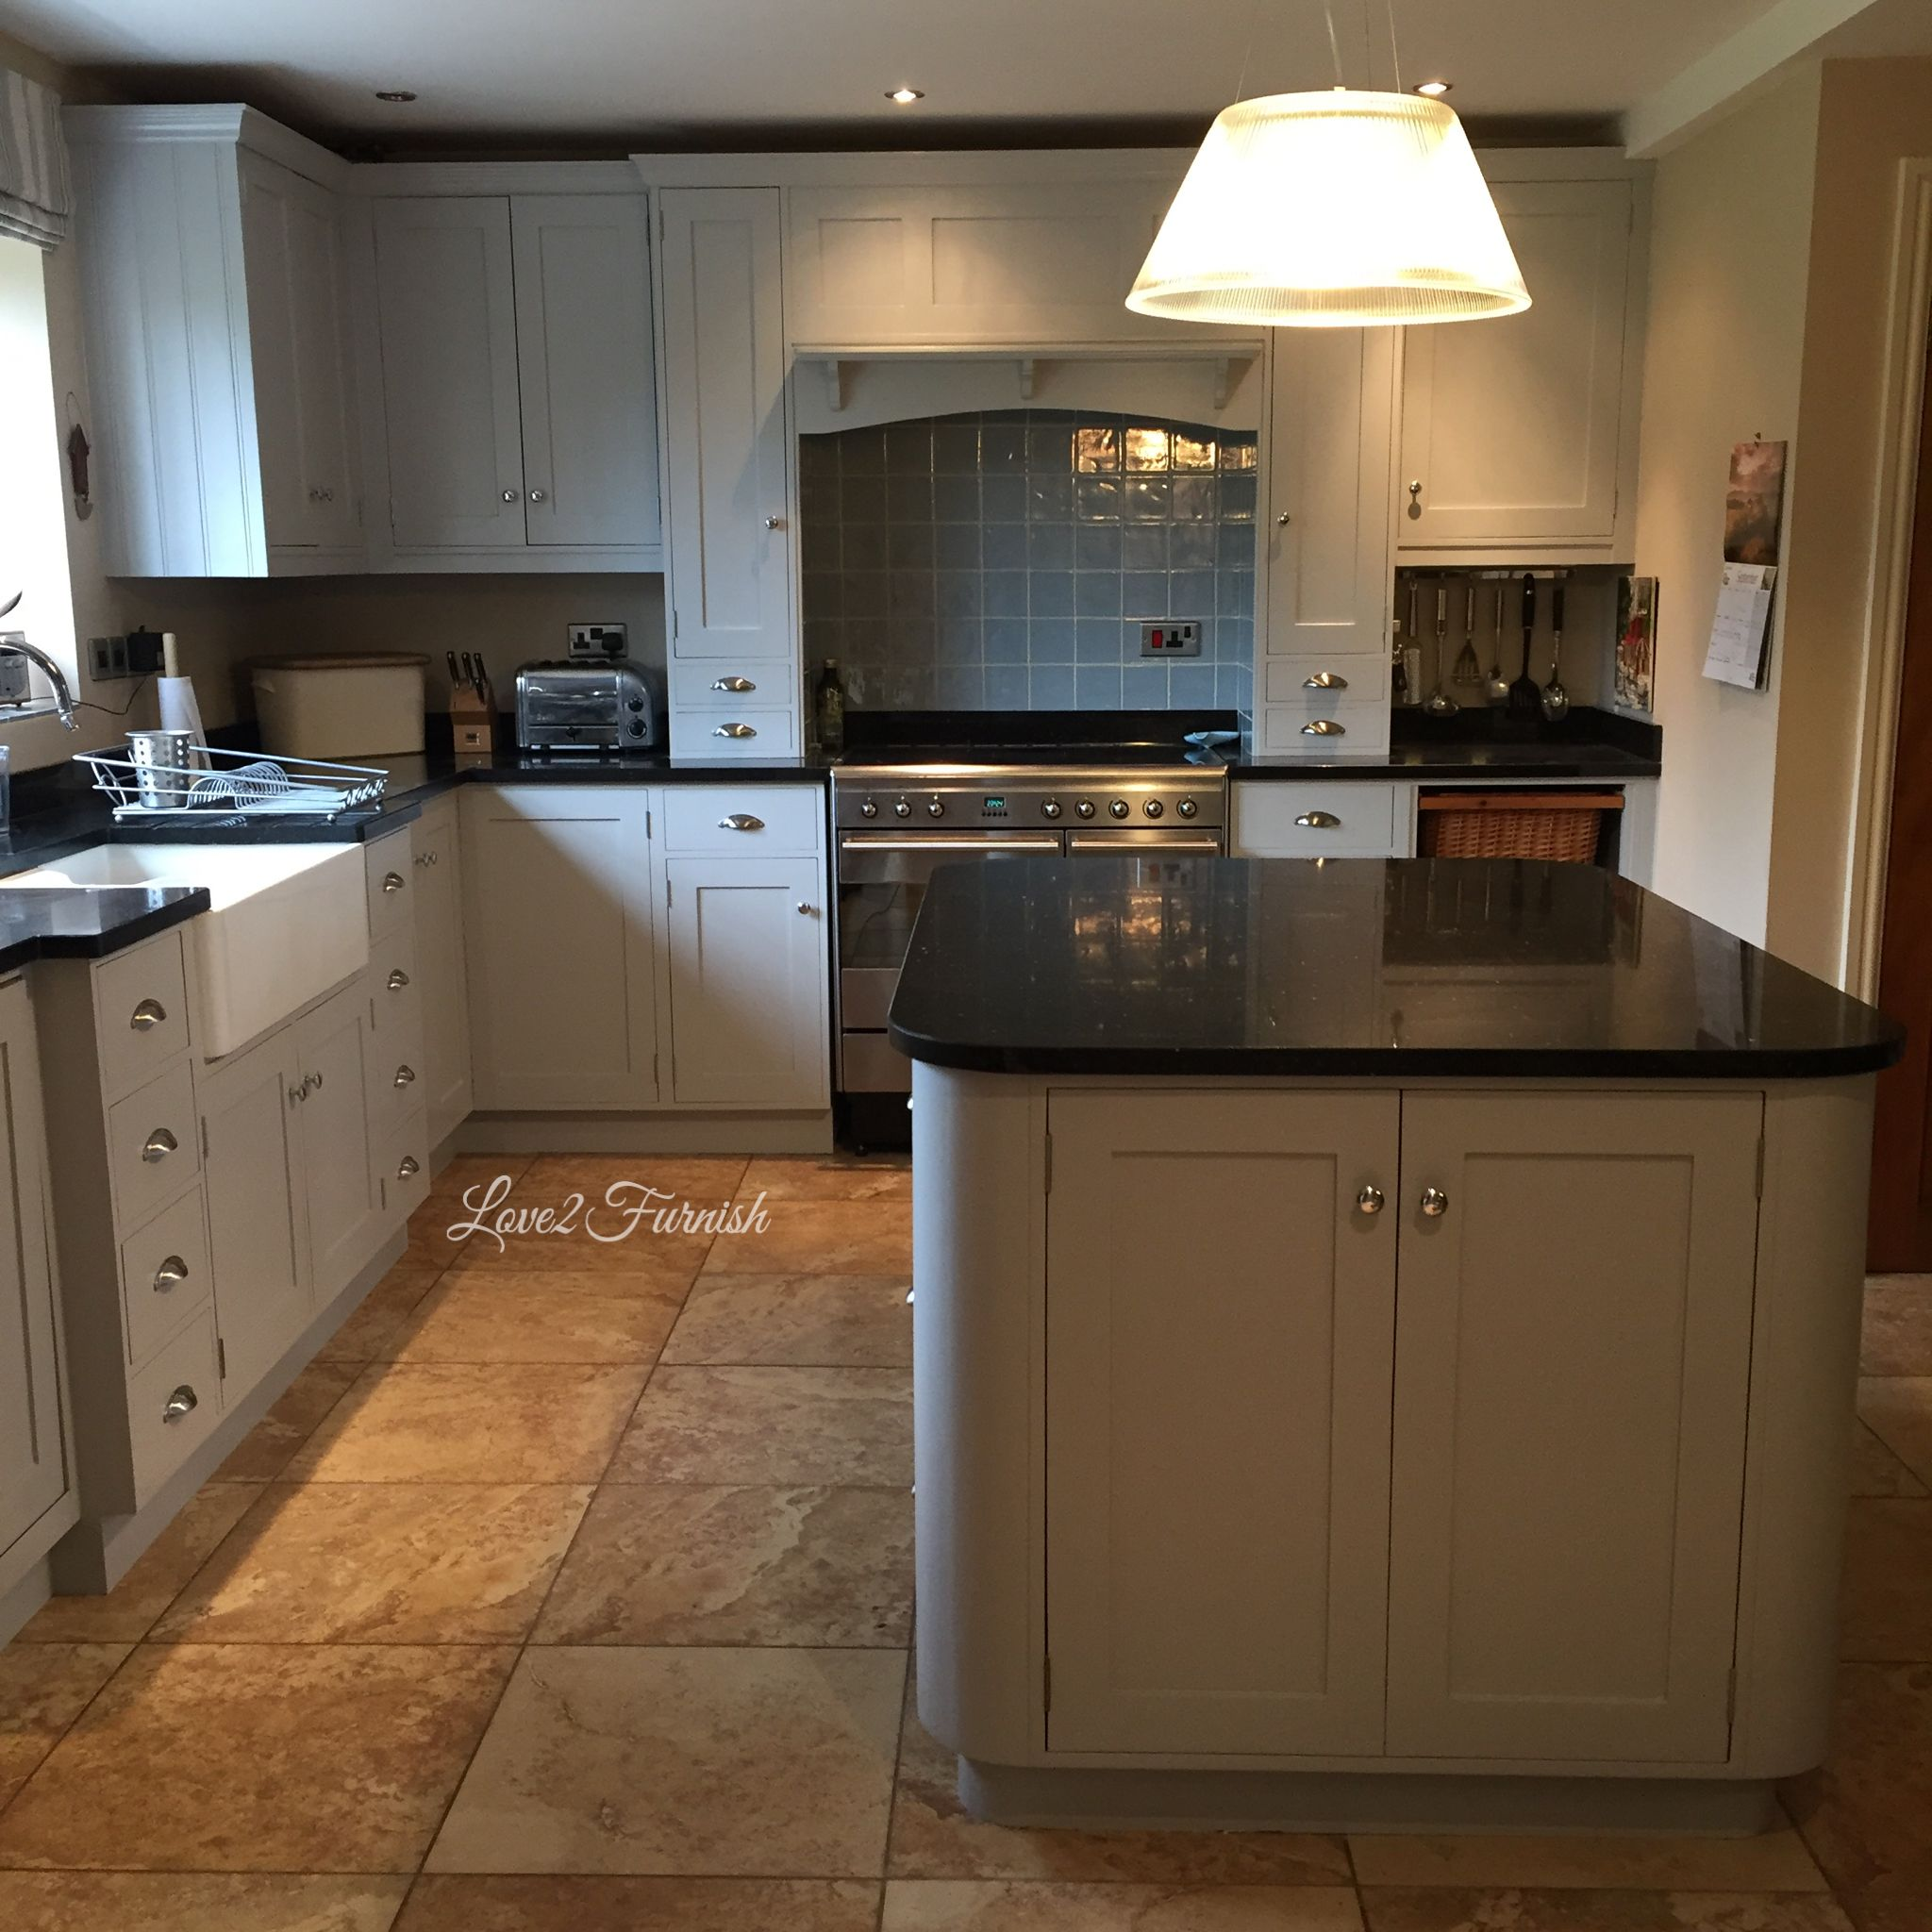 Best Hand Painted Kitchen In Seagull Gray By General Finishes 640 x 480